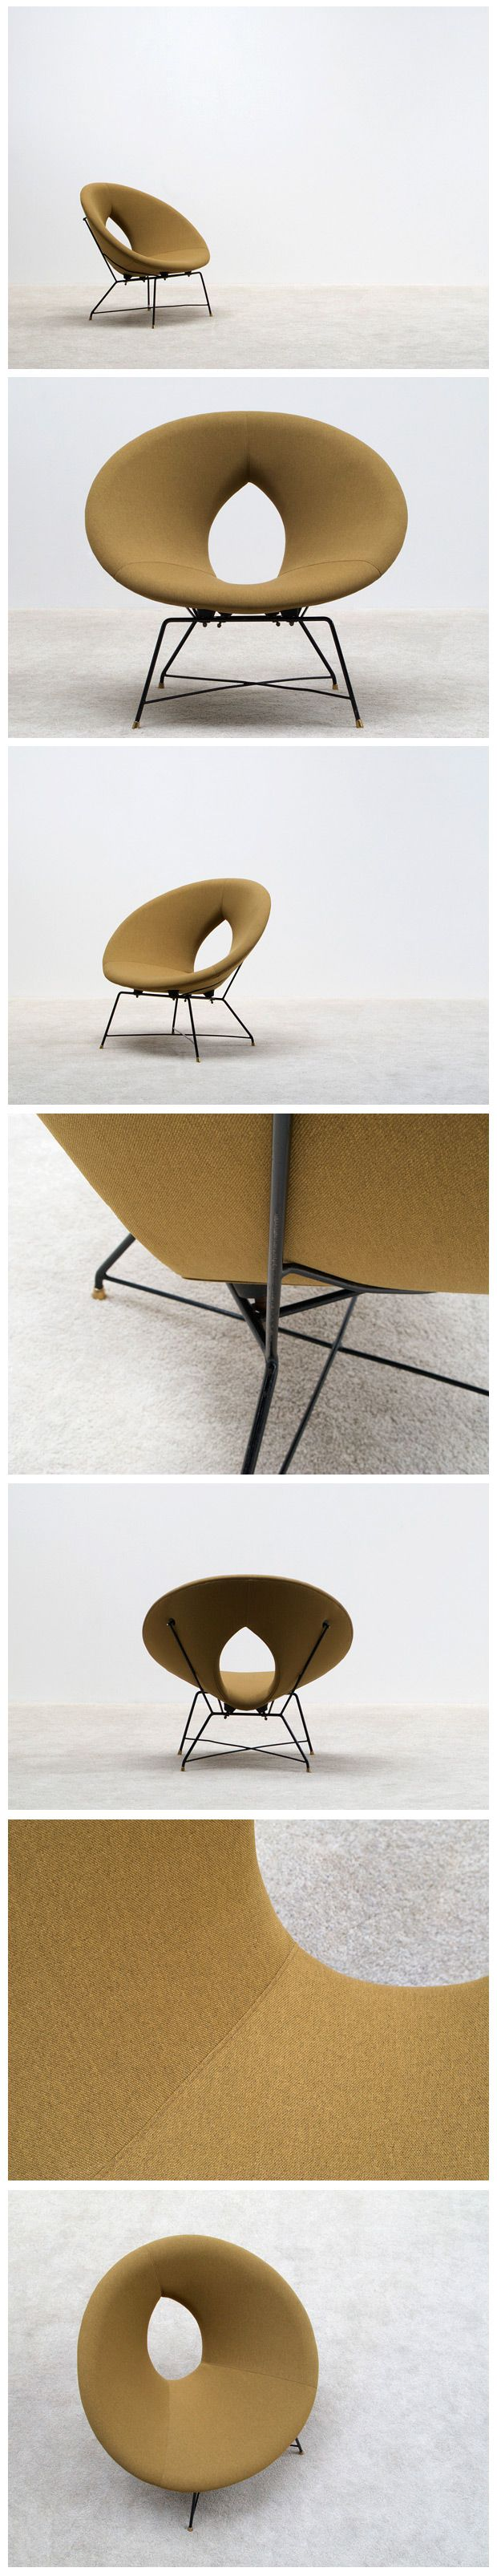 Kosmos side chair from Augusto Bozzi for Saporiti Italy,1956